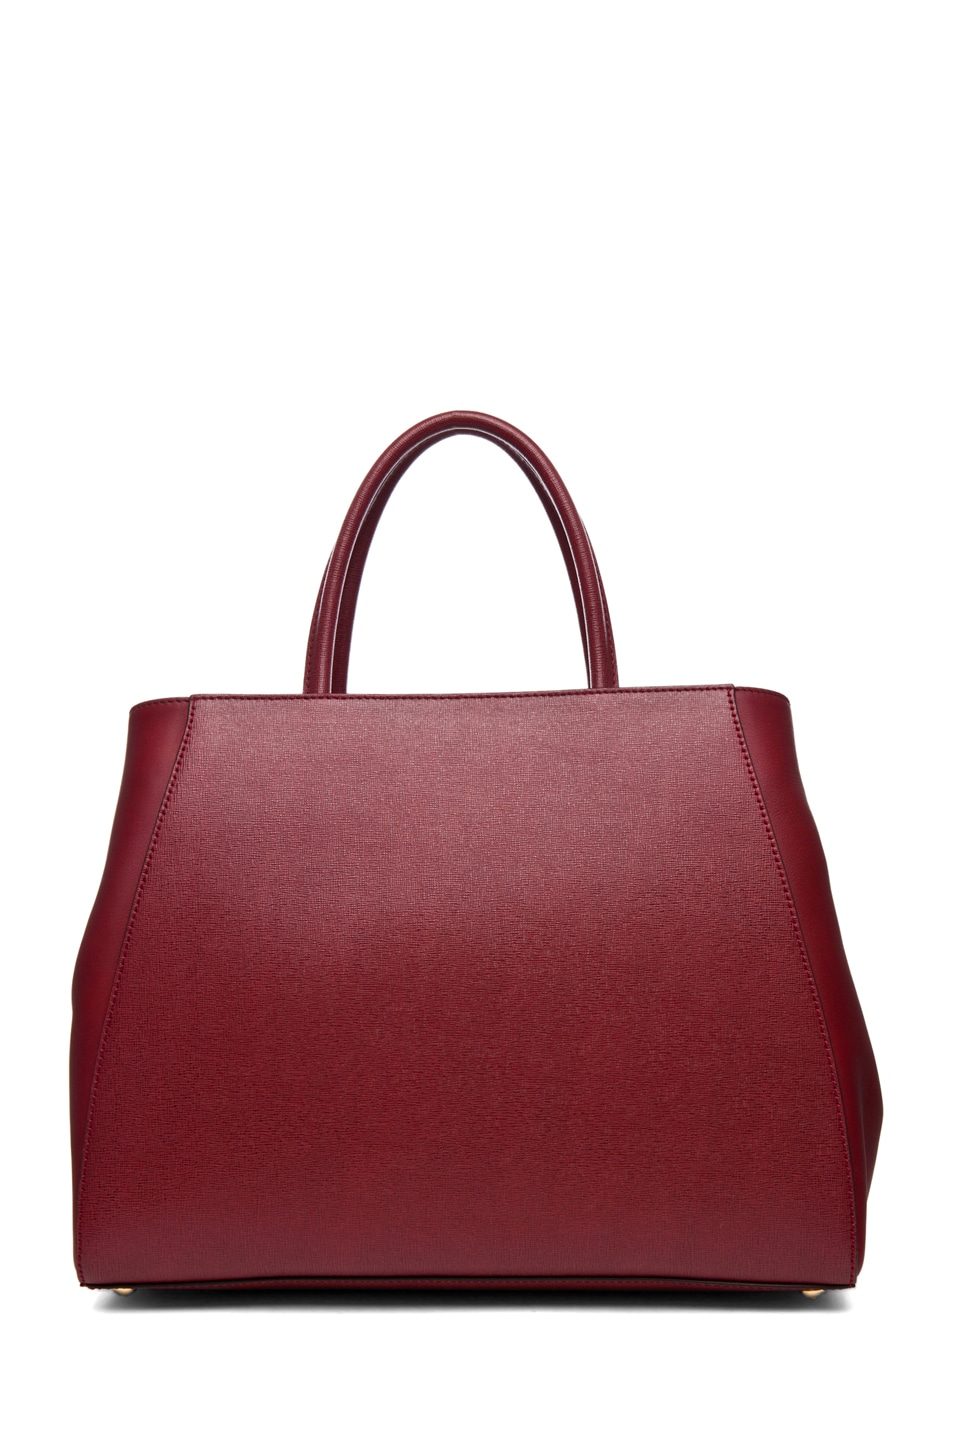 Image 2 of Fendi Medium Shopper Bag in Dark Cherry